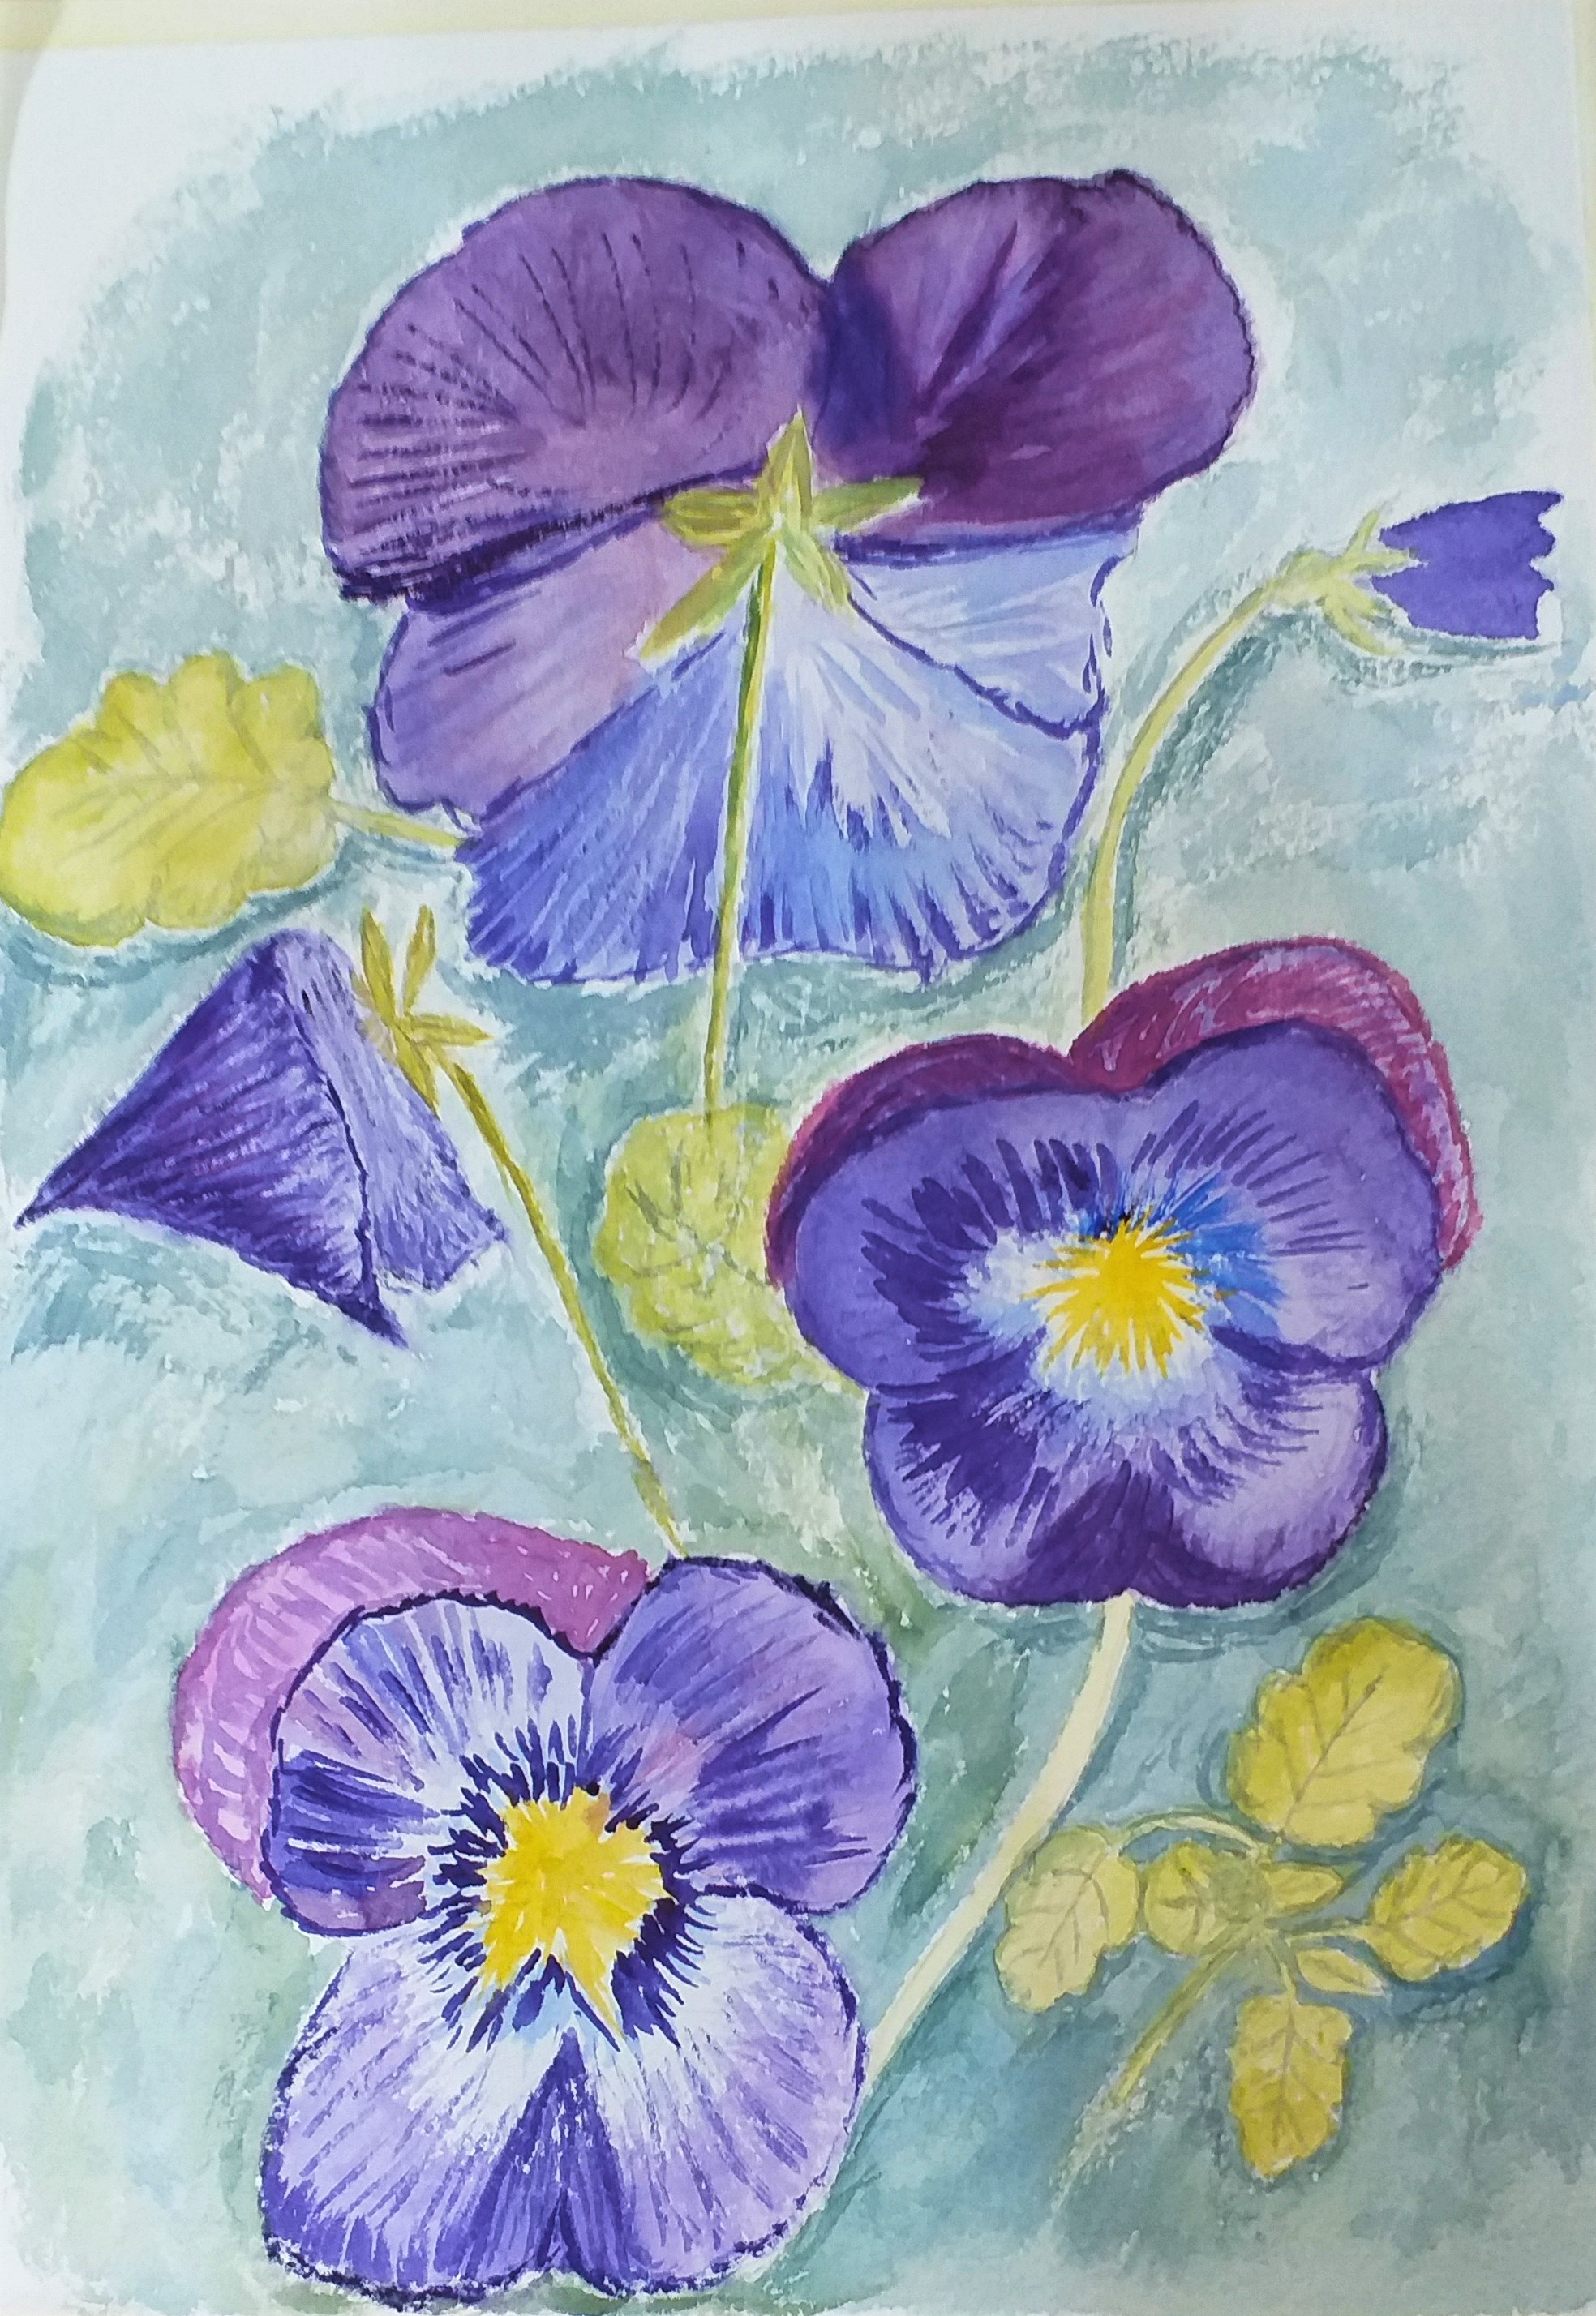 Watercolour of pansies created by Debs at Watercolour classes in Worcestershire